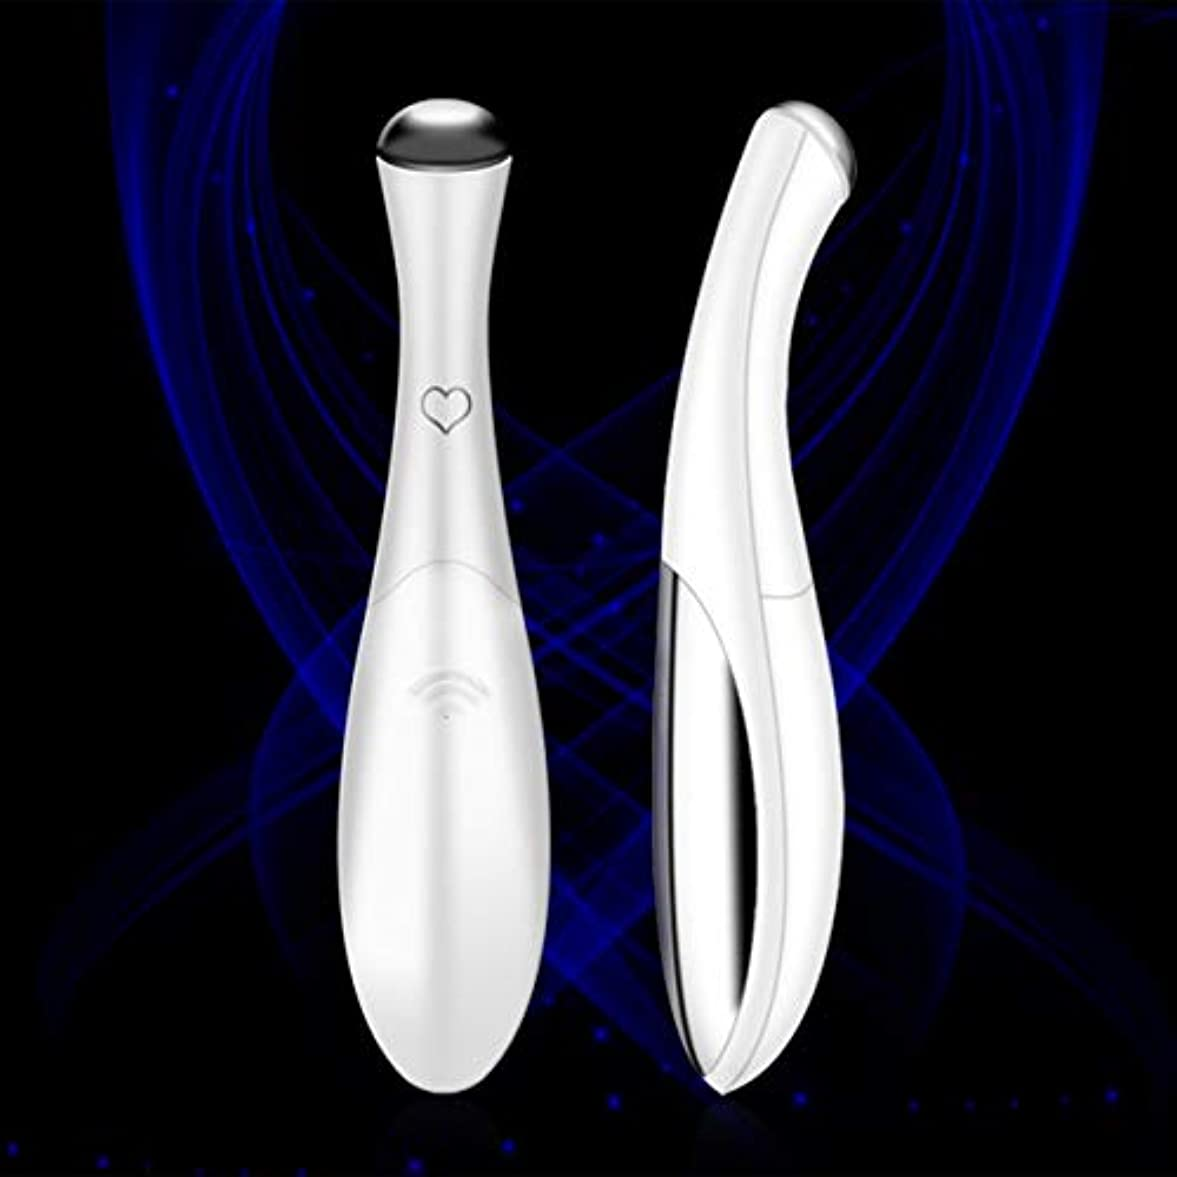 特徴広げるコンパスEye Massager Device Pen Type Facials Vibration Anti-aging Wrinkle Removal Pouch Dark Circles Skin Lifting Machine Eye Care